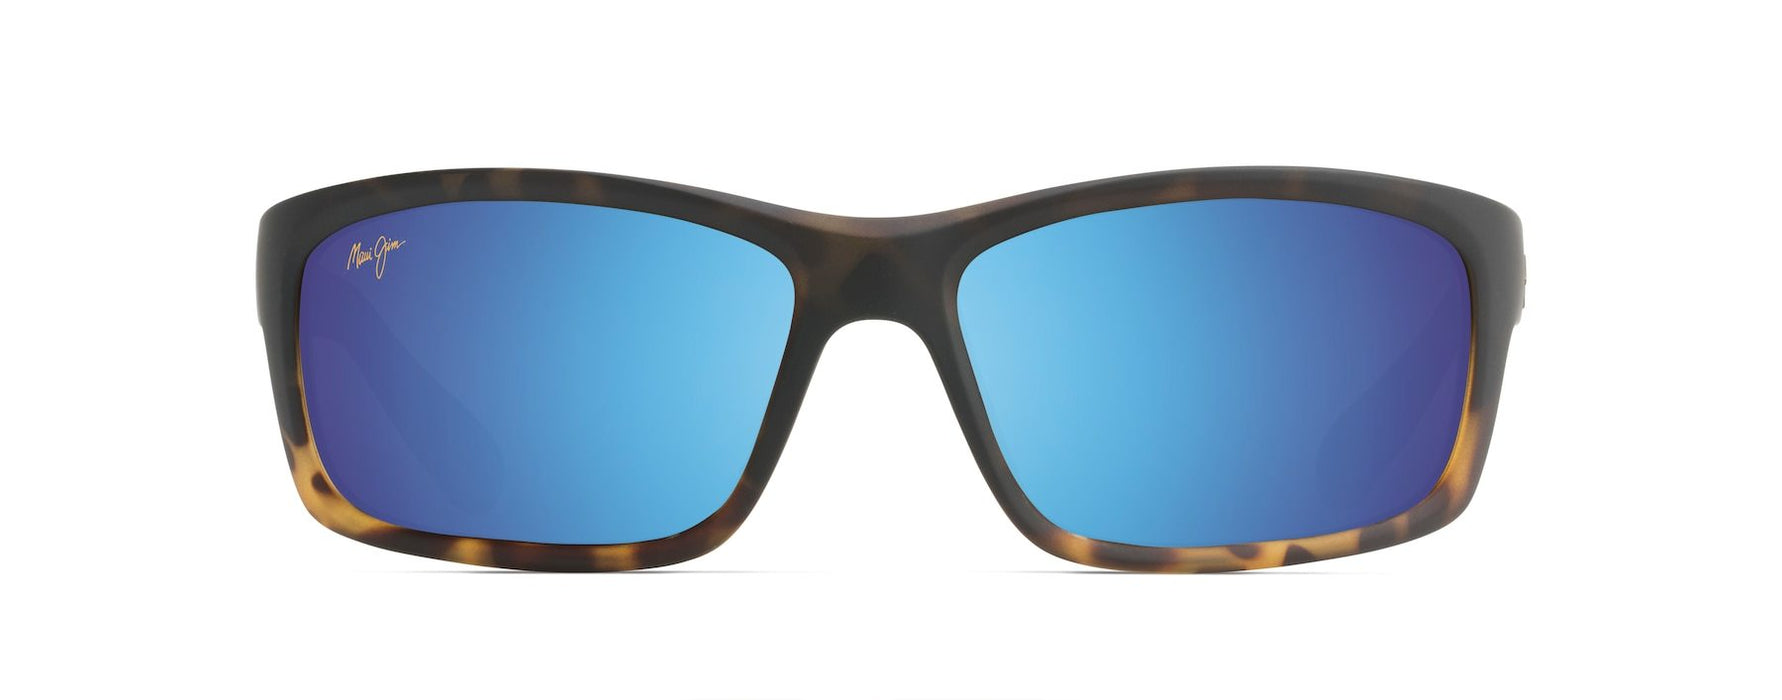 MyMaui Kanaio Coast MM766-021 Sunglasses